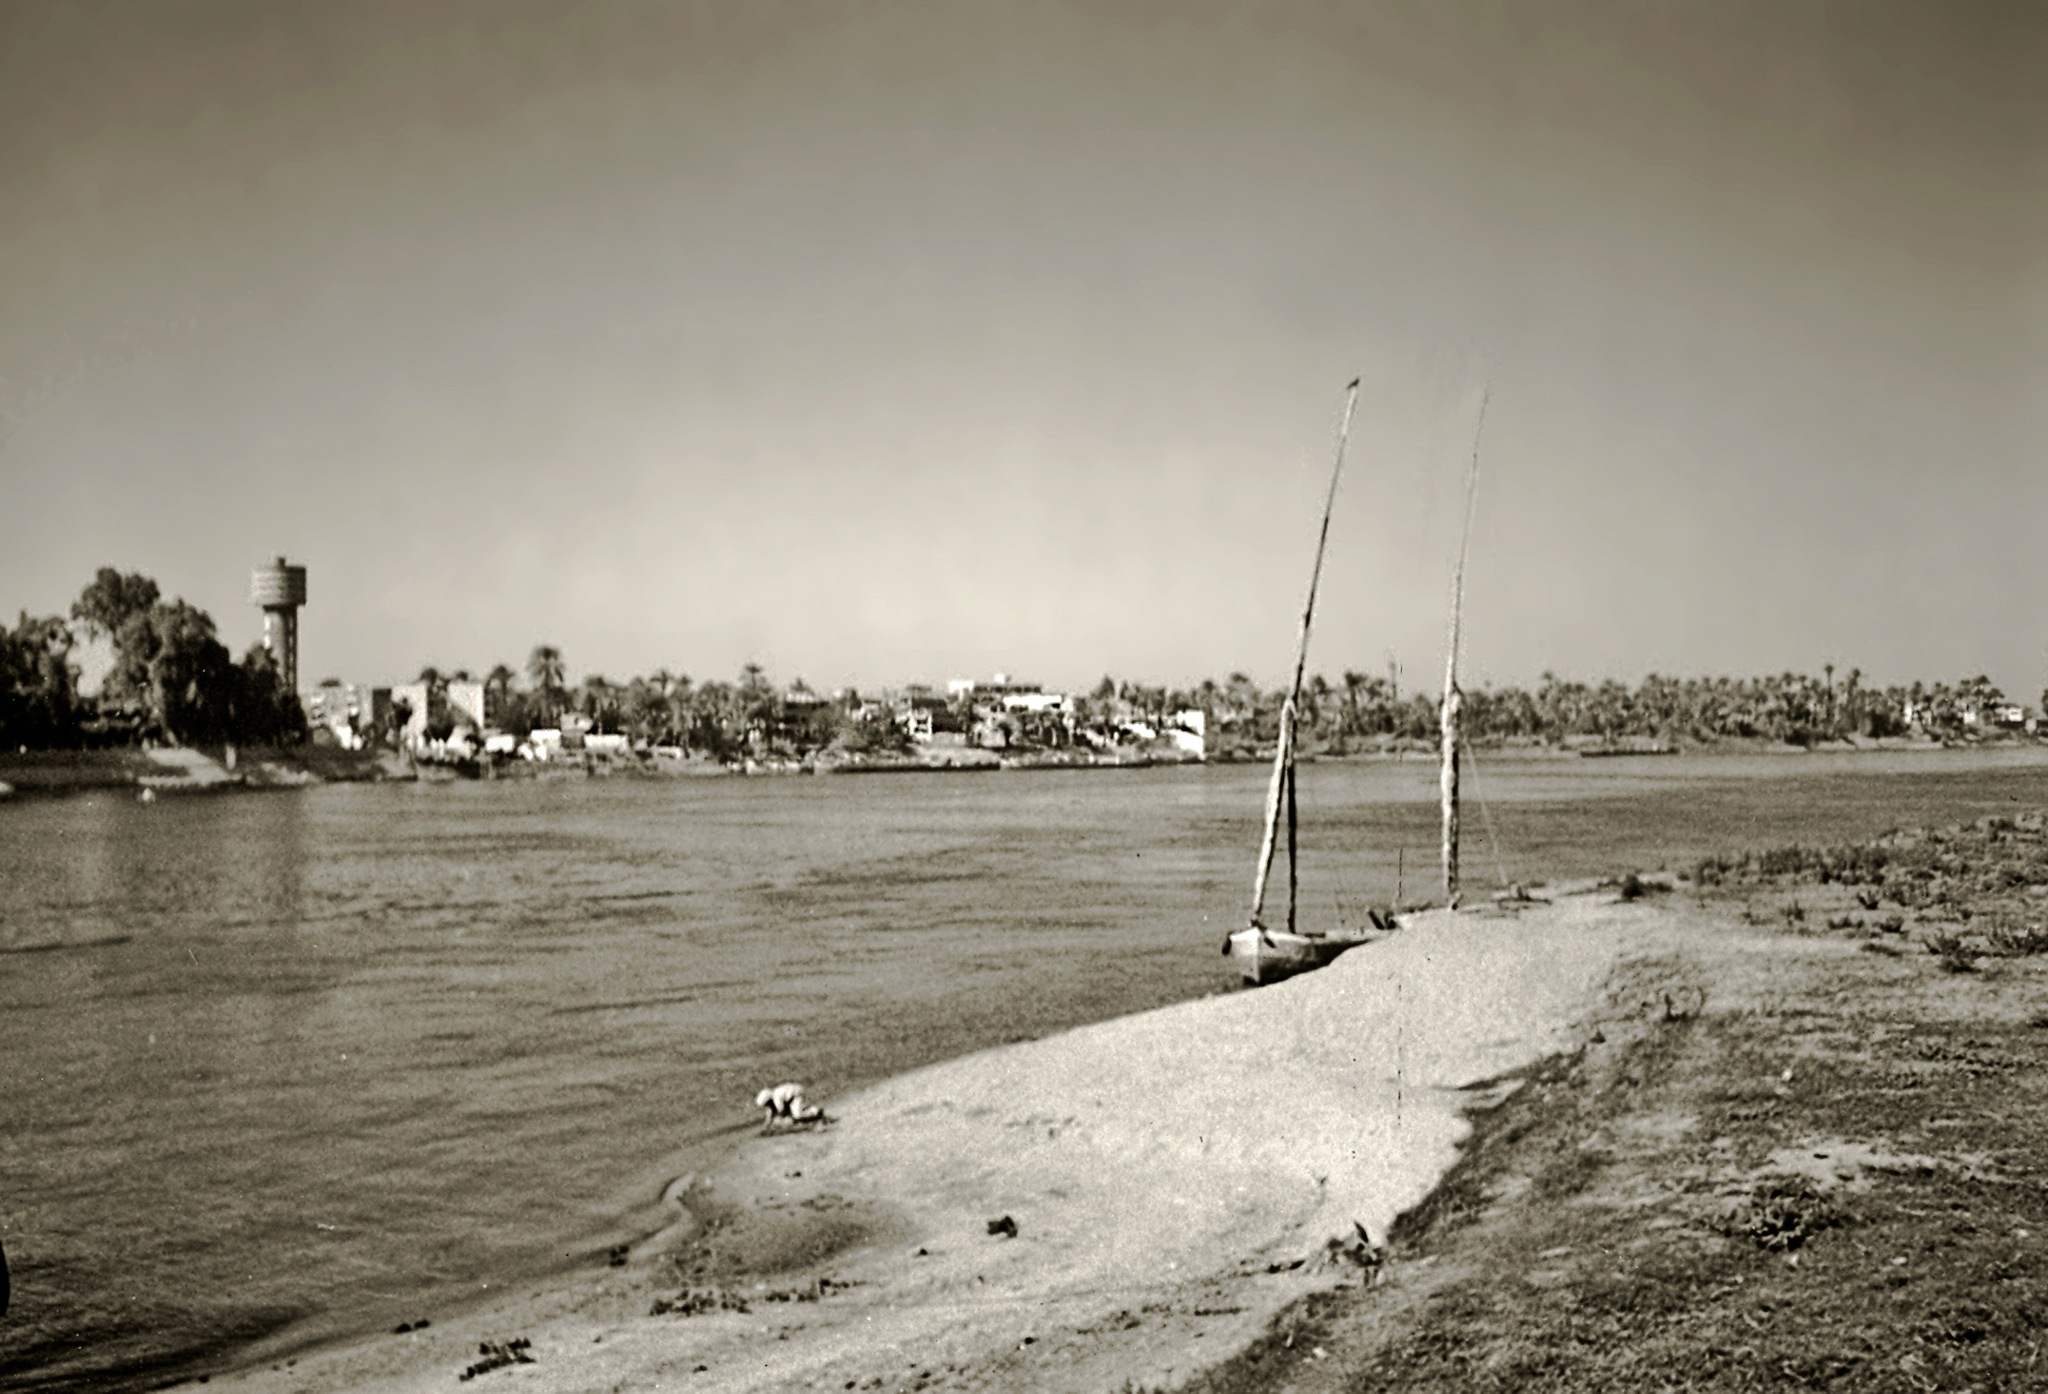 Over the Nile 014 by mo'ness youness